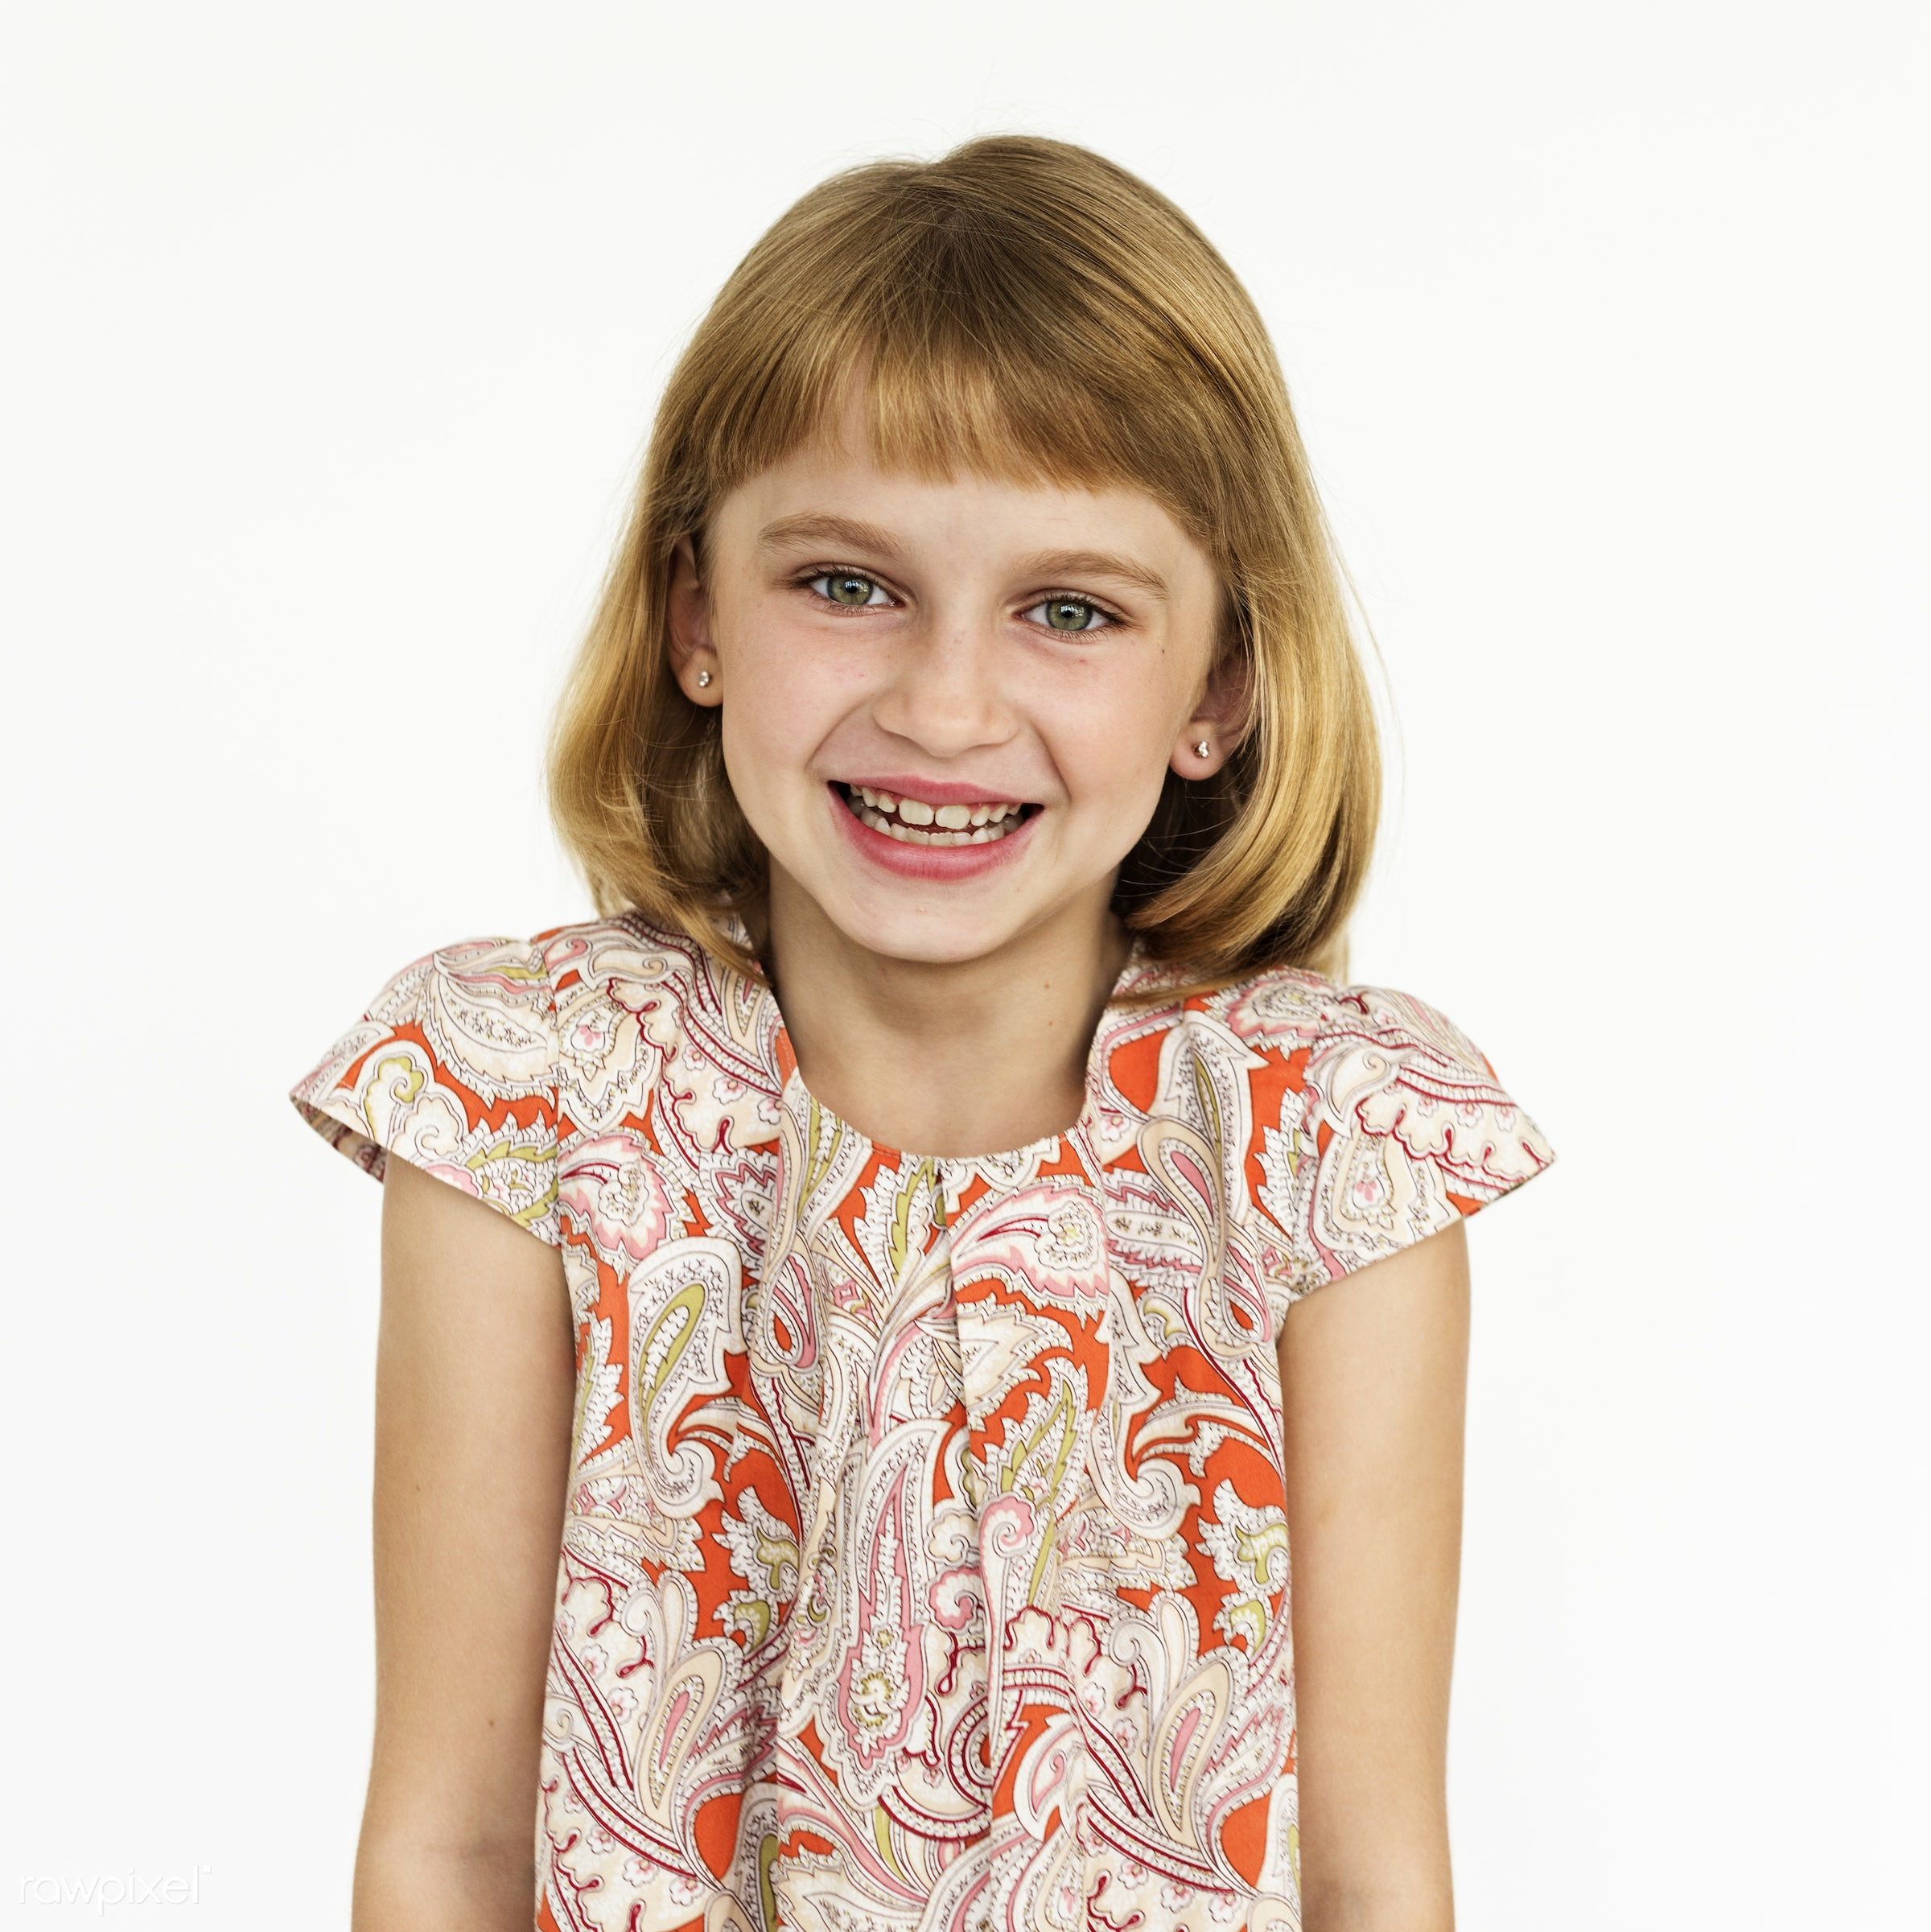 studio, expression, person, people, kid, childhood, smile, cheerful, smiling, isolated, little girl, white, happiness,...